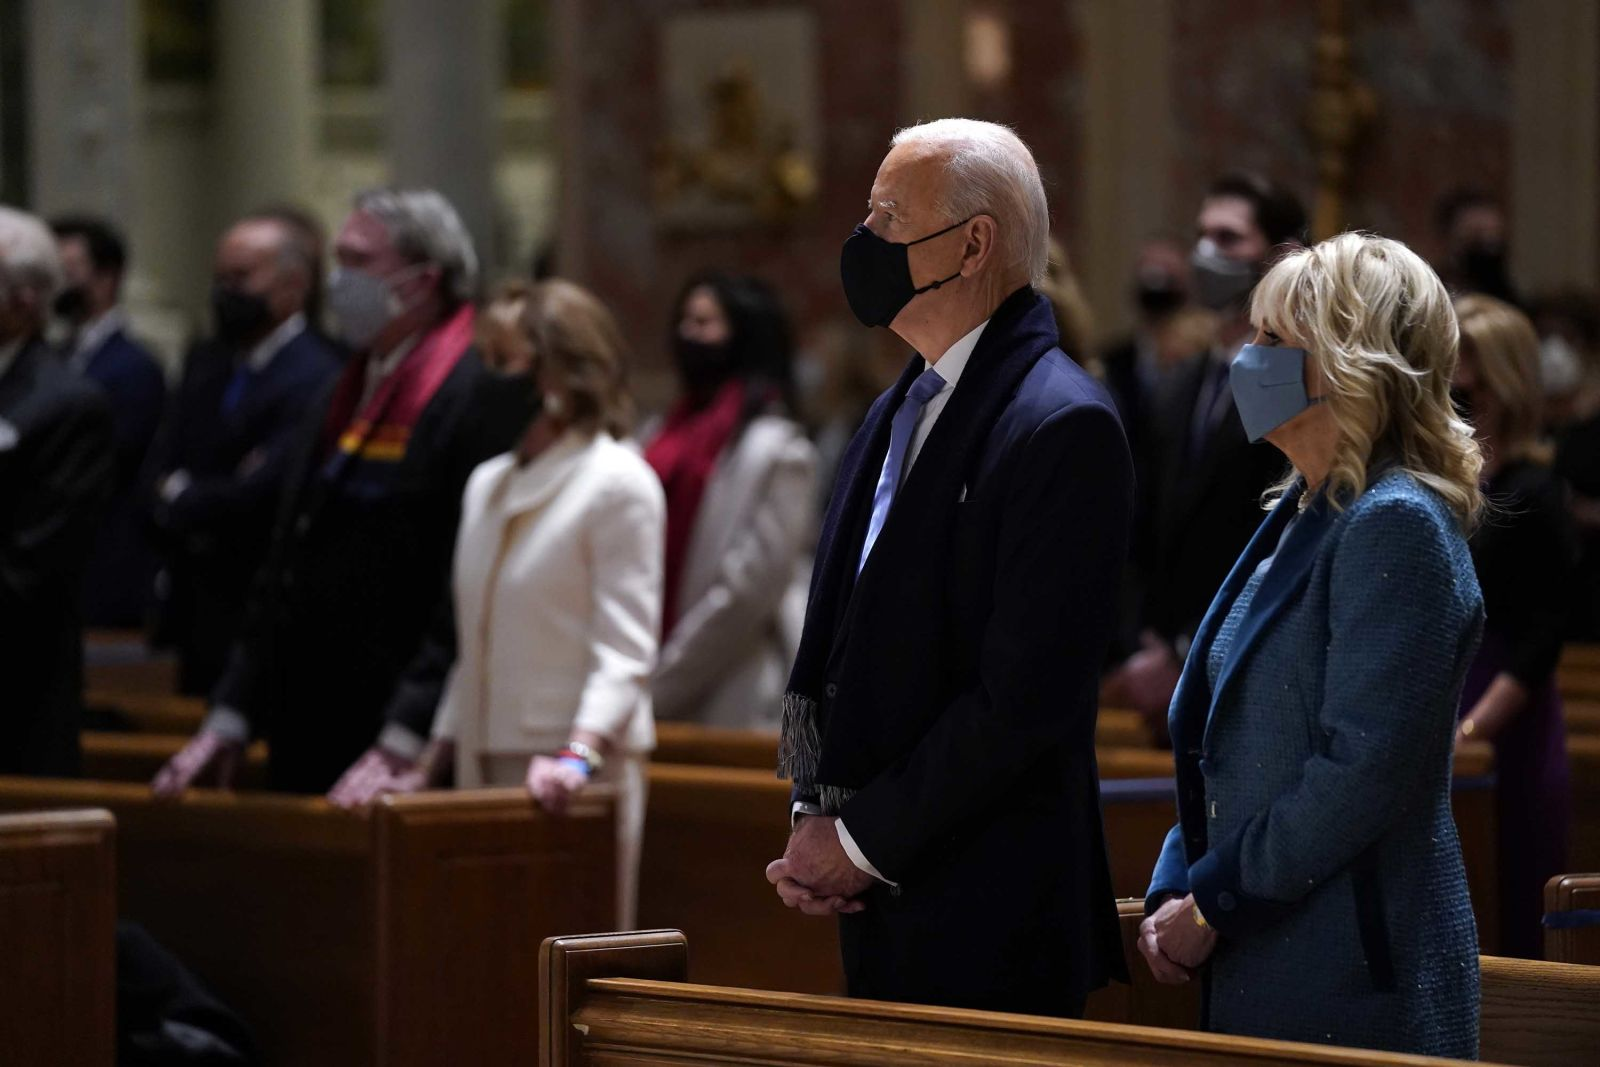 biden-inauguration-bidens-church.jpg